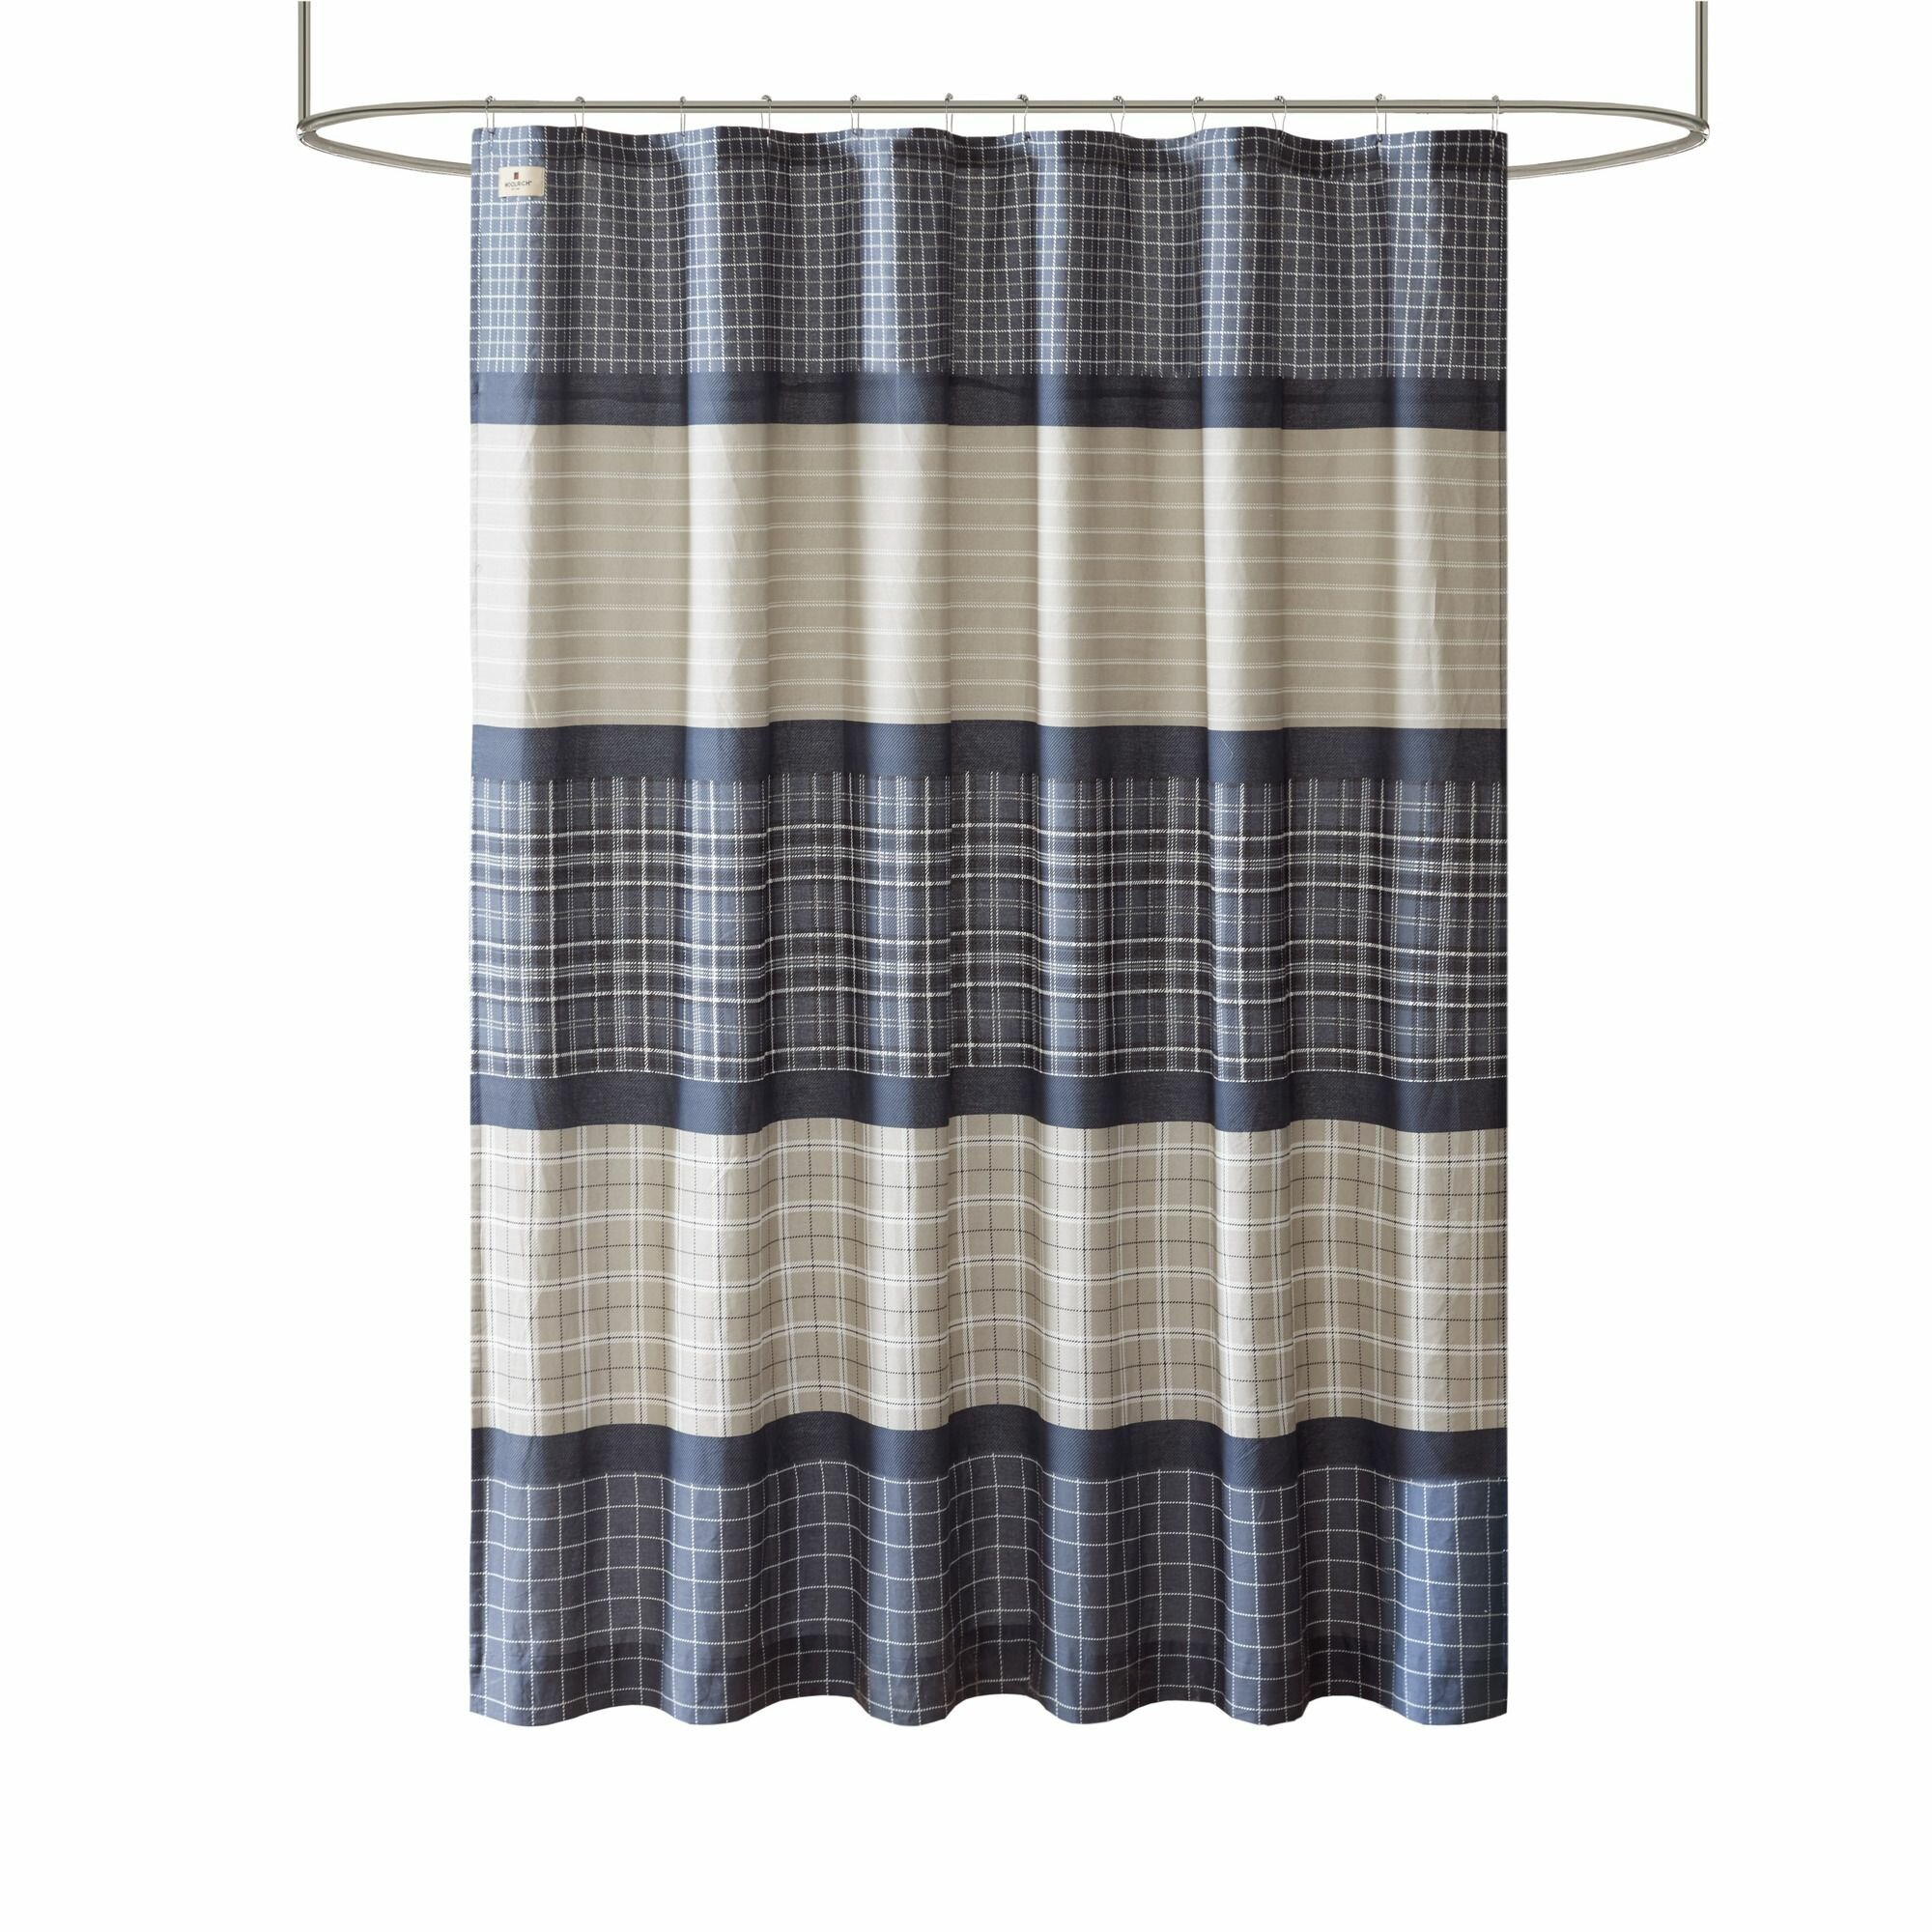 Details About Woolrich Flagship Printed Plaid Single Shower Curtain